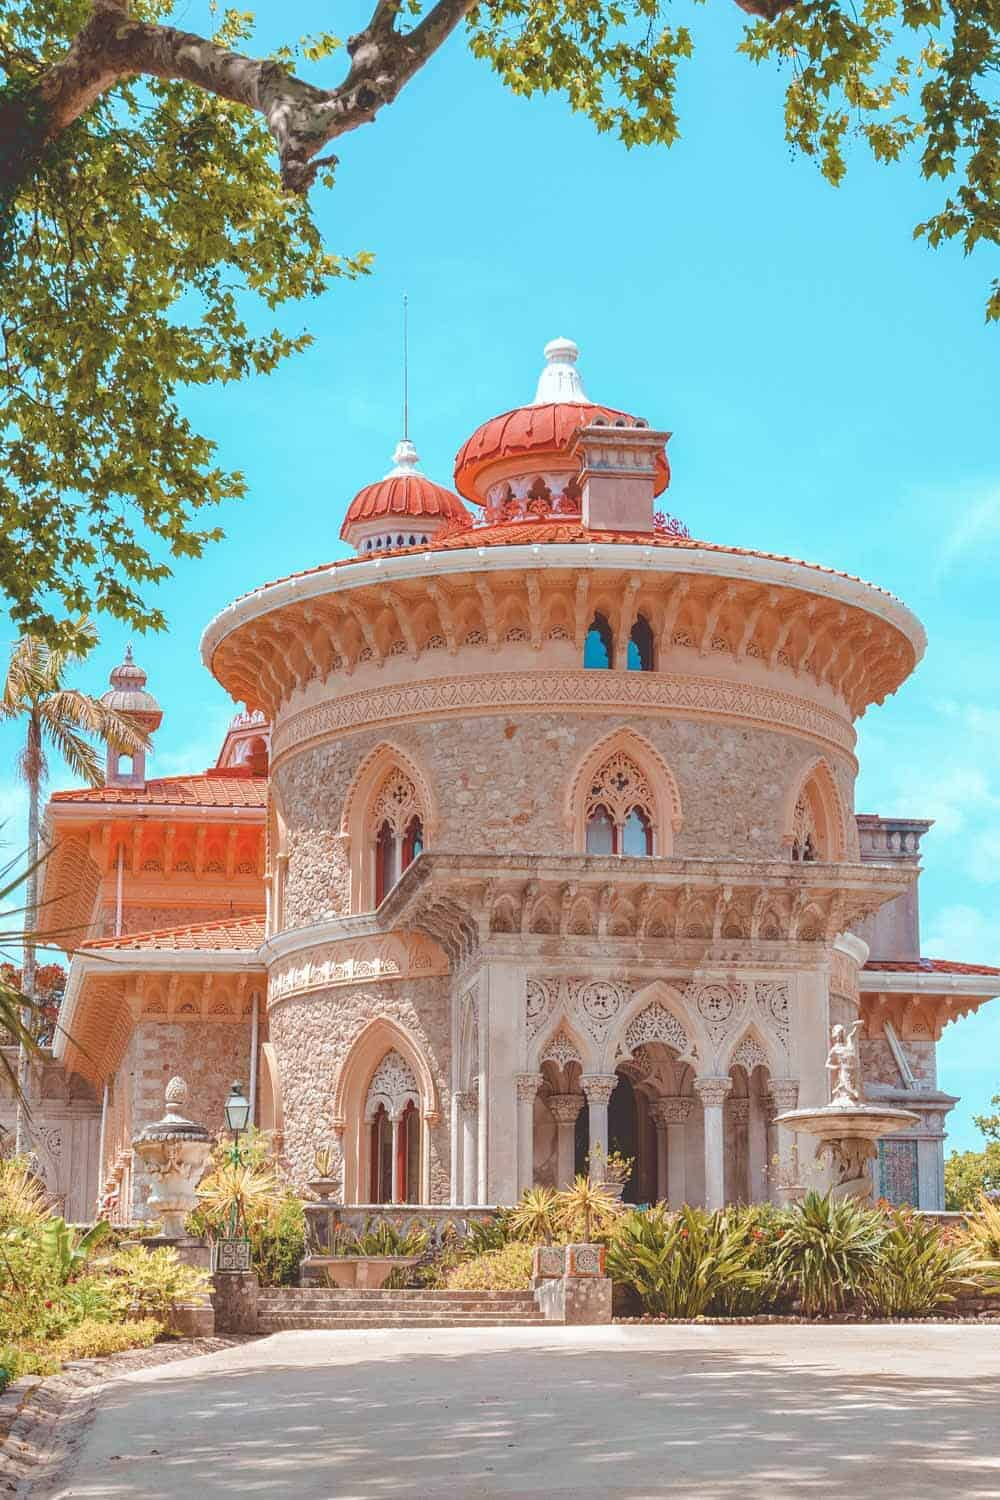 Municipal museum of Palace of Monserrate in the village of Sintra, Lisbon, Portugal